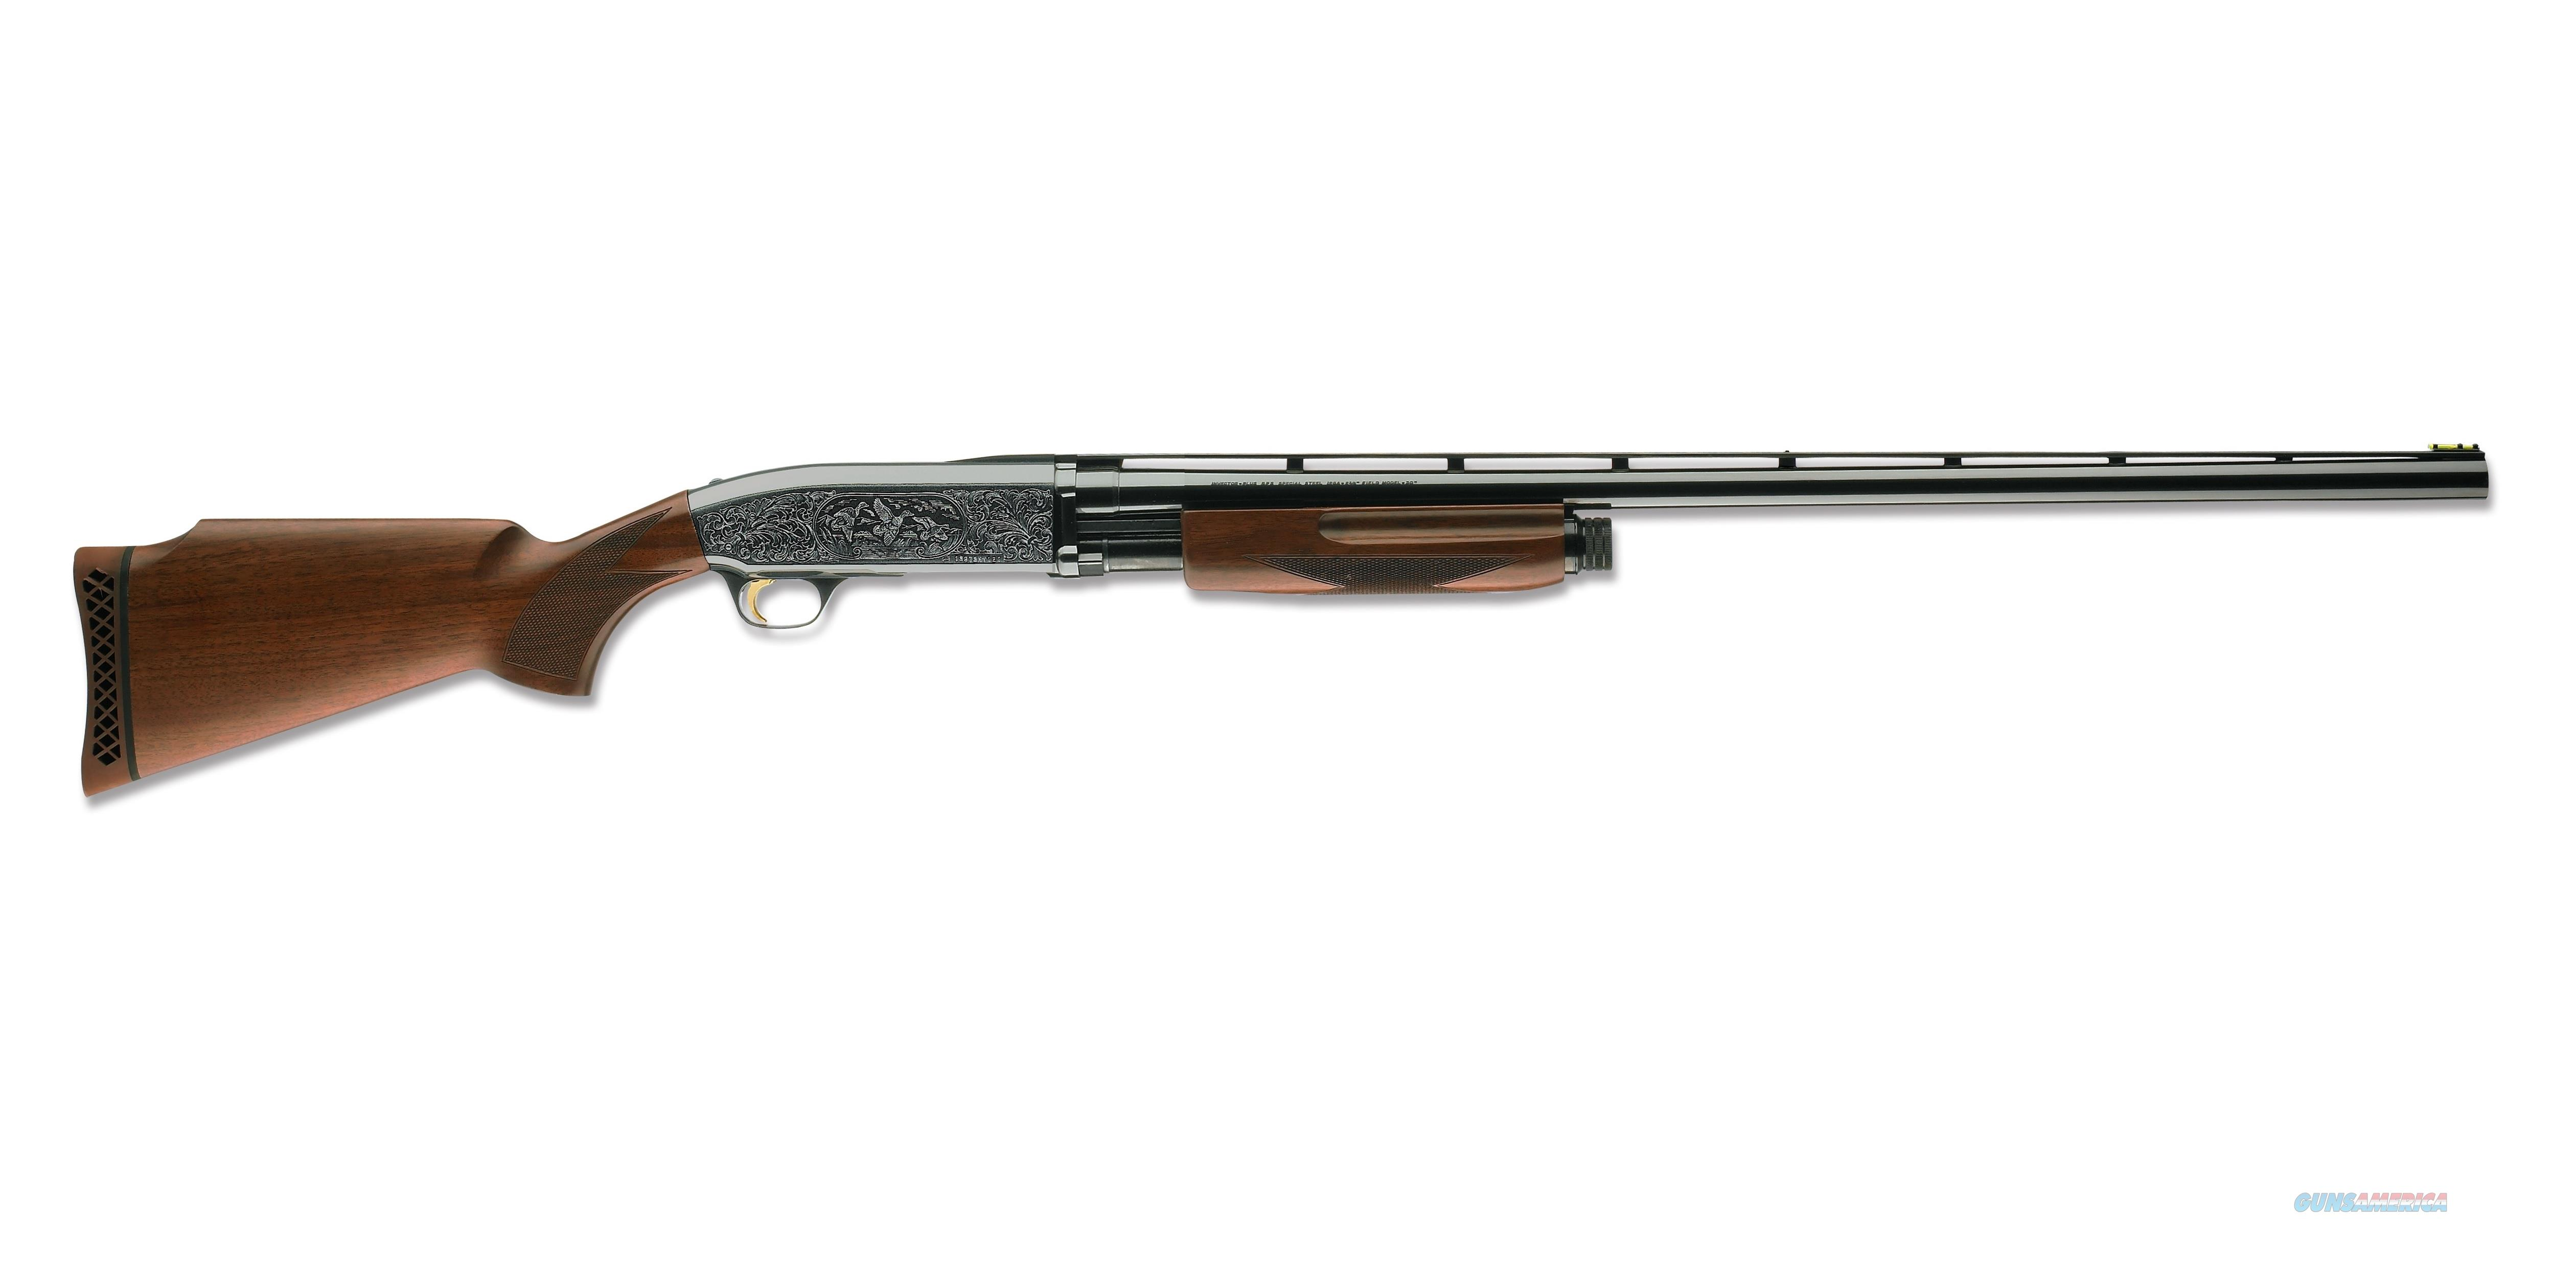 "Browning BPS Trap Engraved Shotgun 12 Gauge 30"" 012242403   Guns > Shotguns > Browning Shotguns > Pump Action > Trap/Skeet"